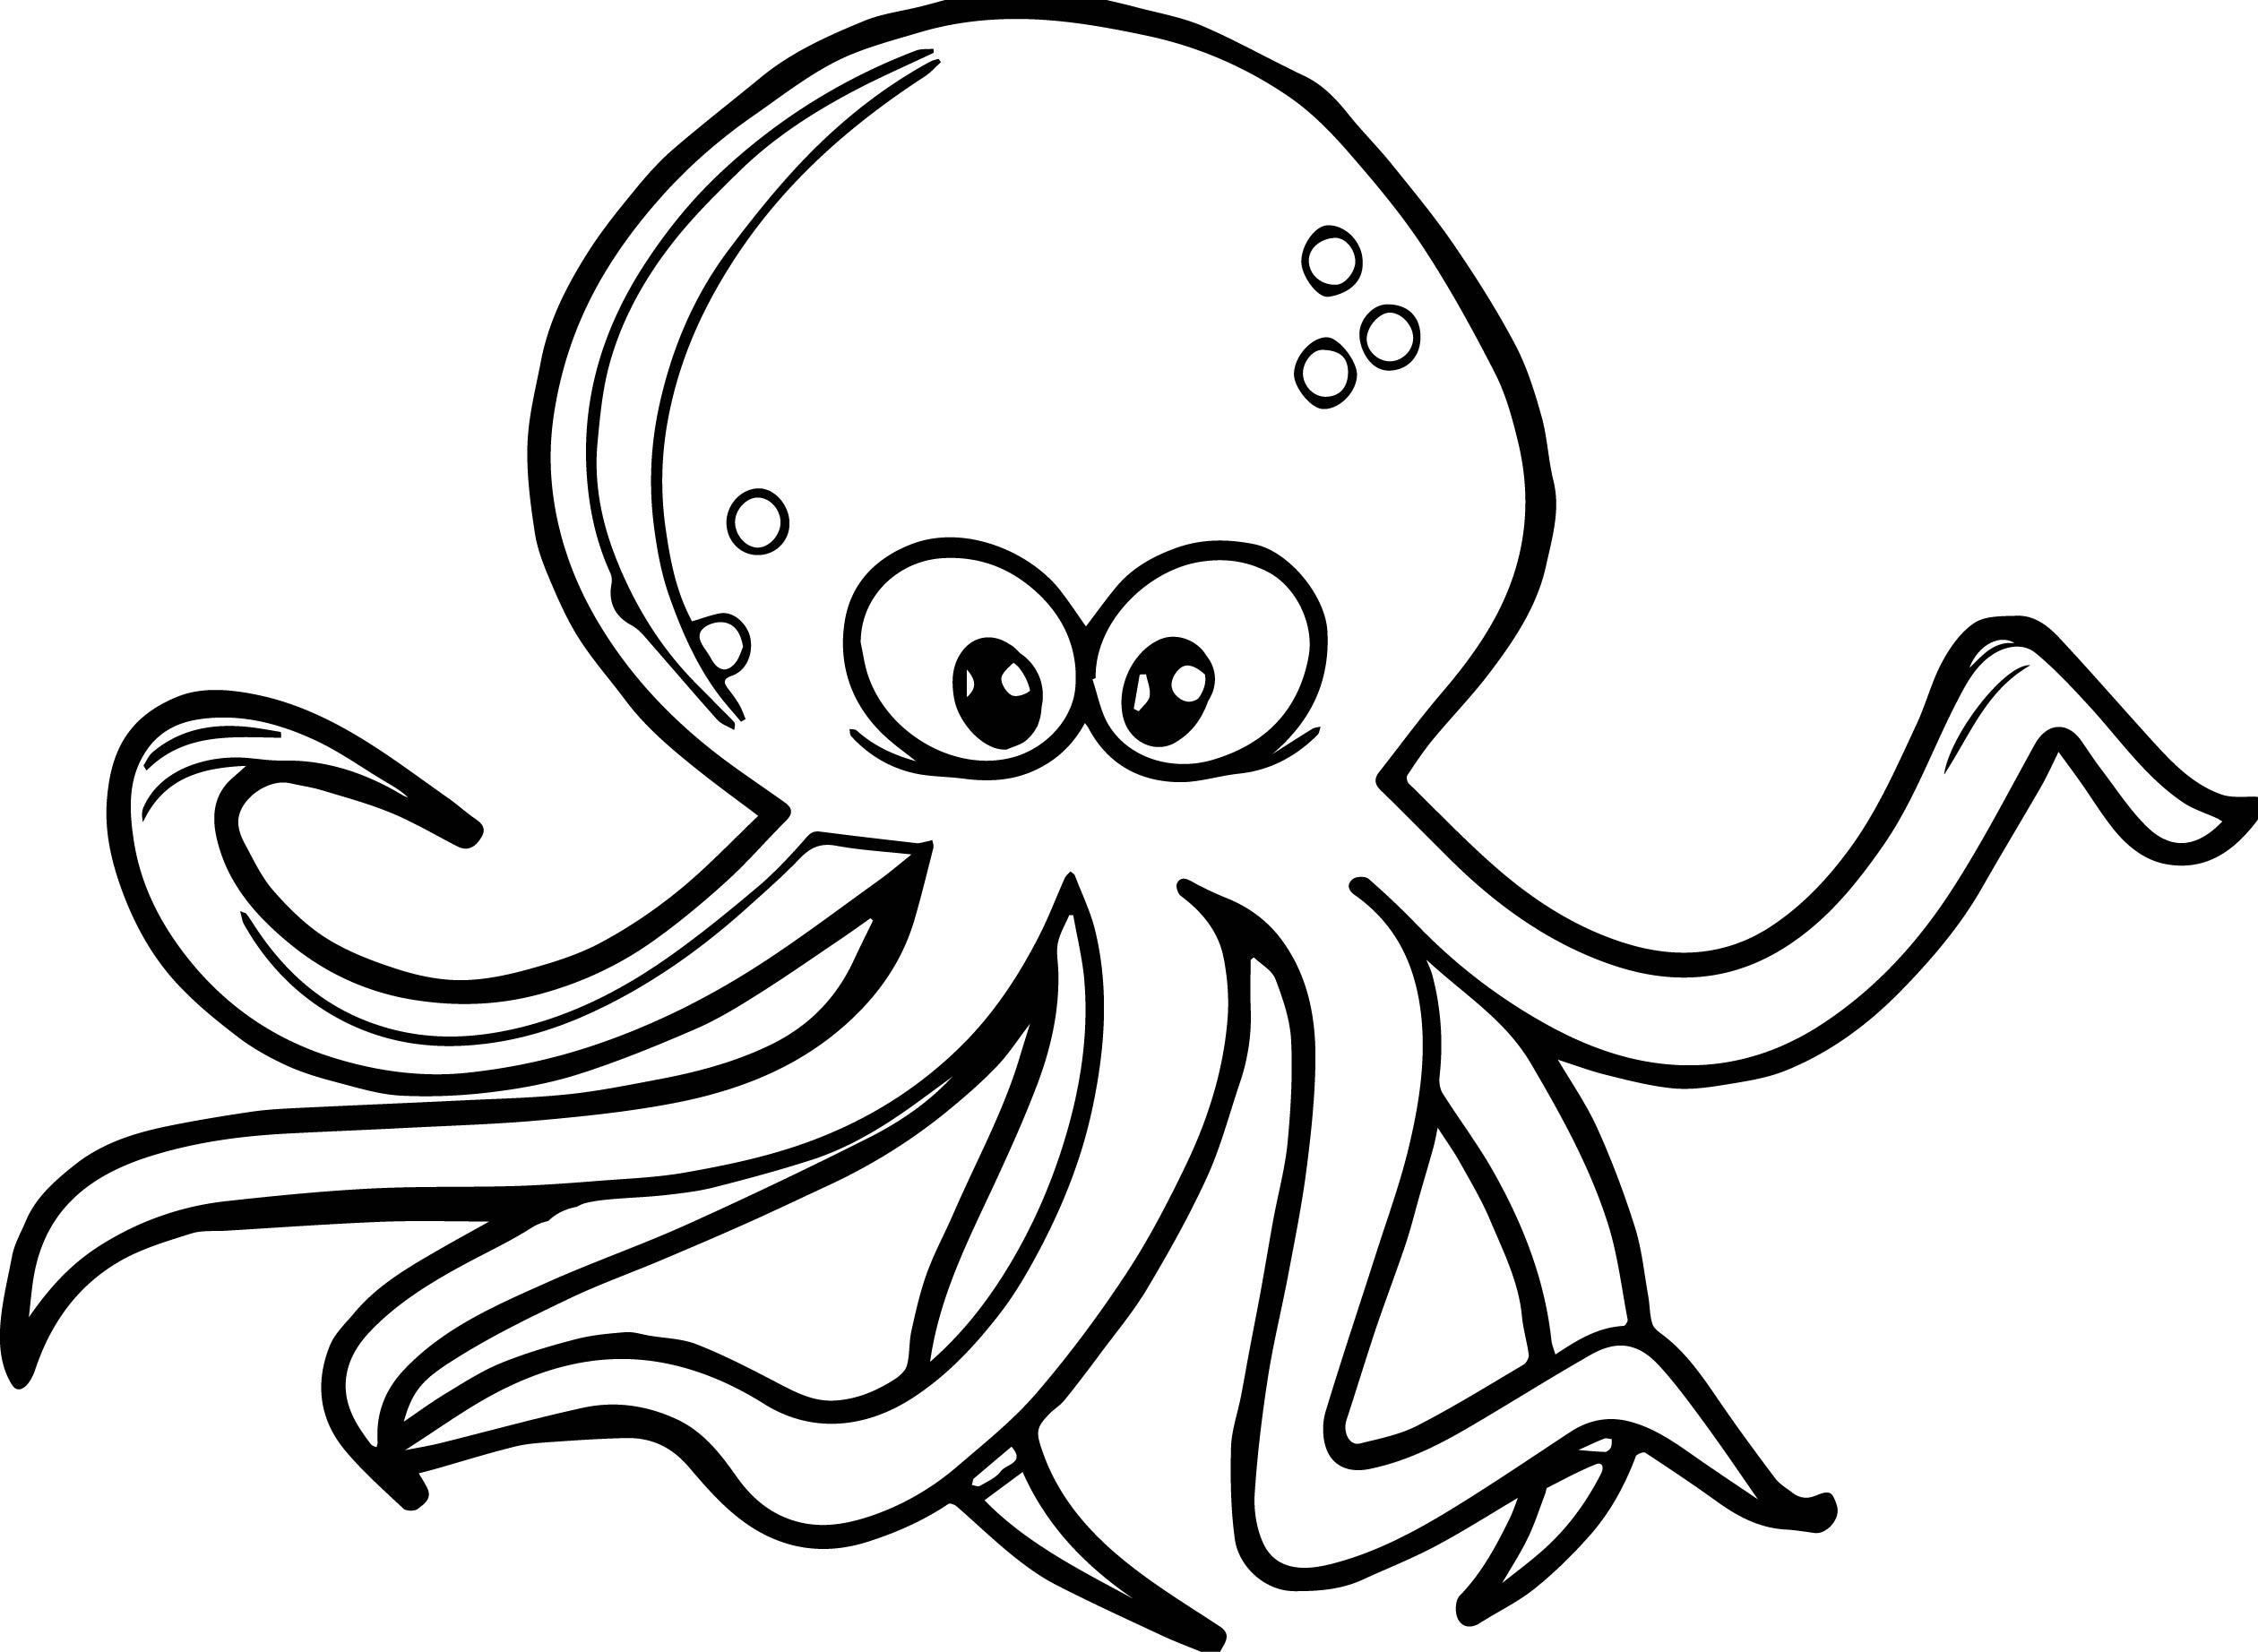 colouring picture of octopus octopus coloring download octopus coloring for free 2019 colouring octopus picture of